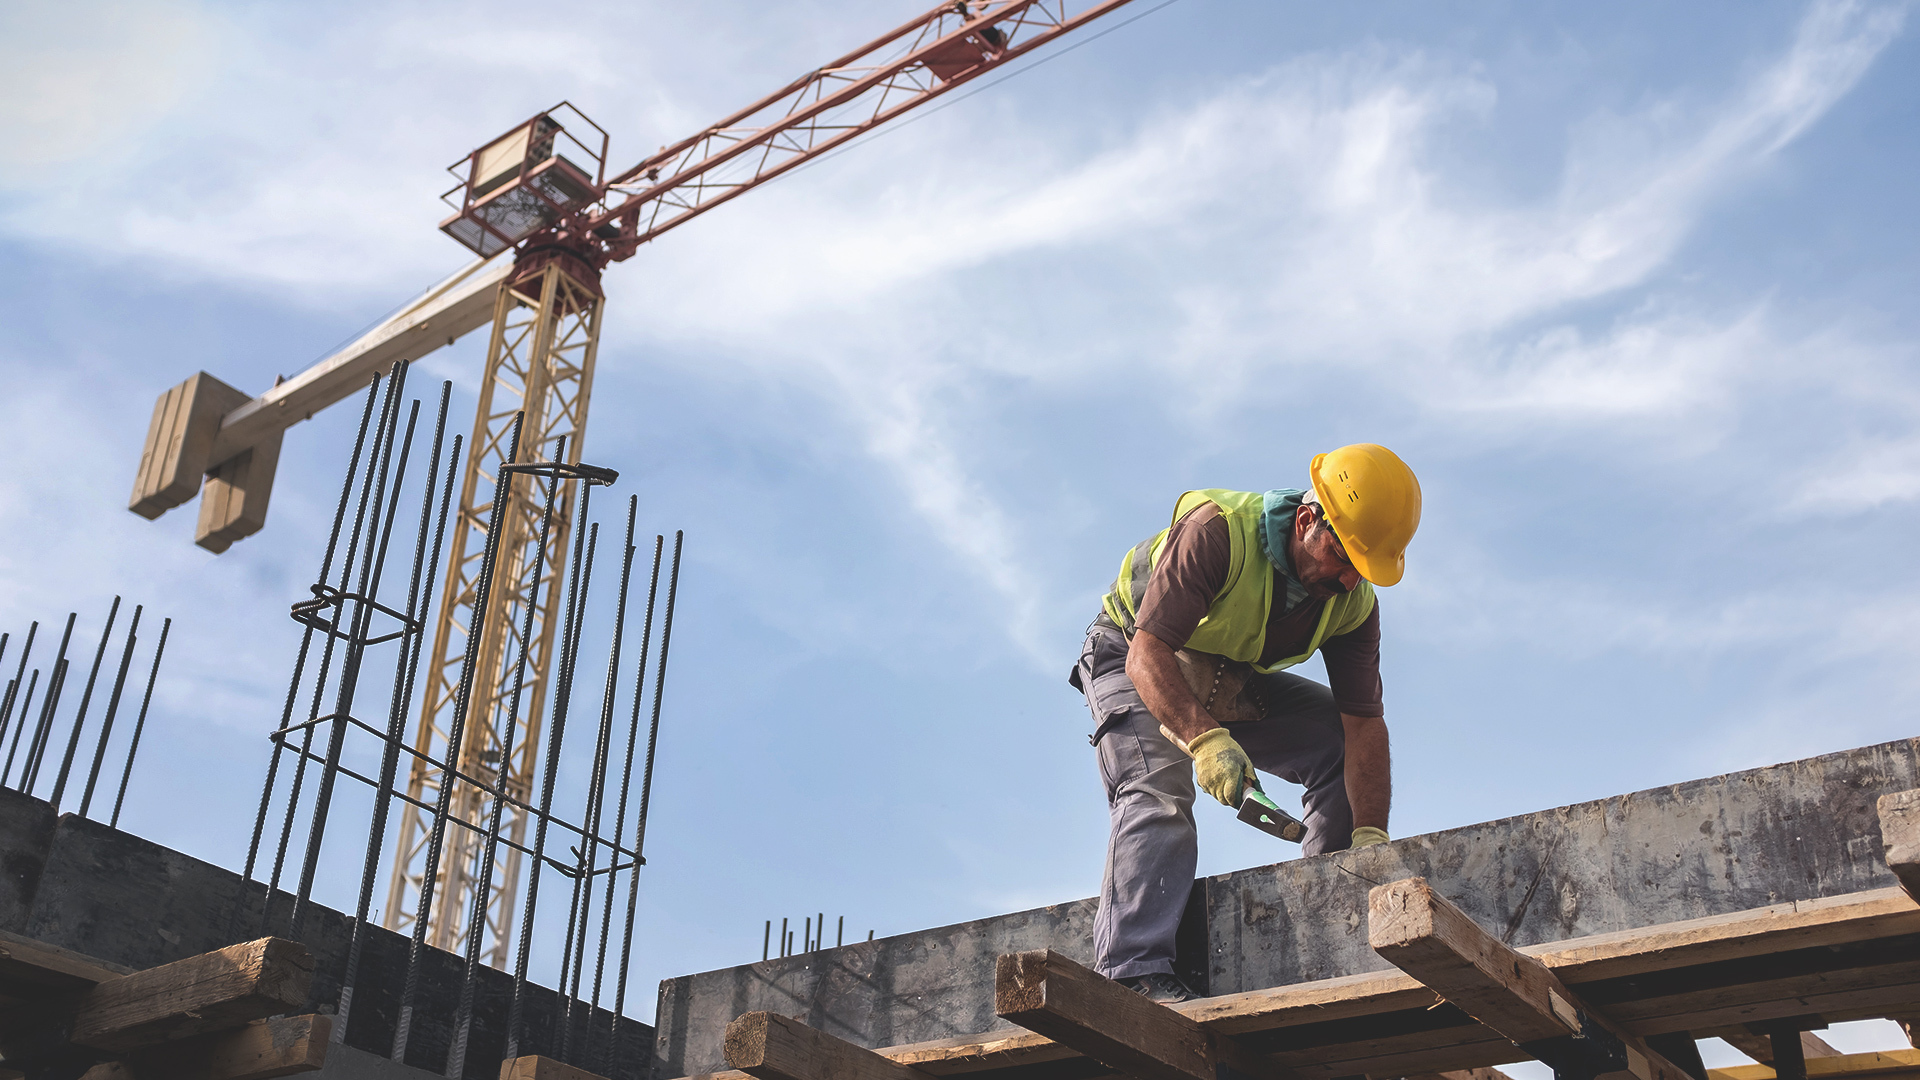 Construction worker in hard hat bent over concrete beams, with crane and blue sky in background